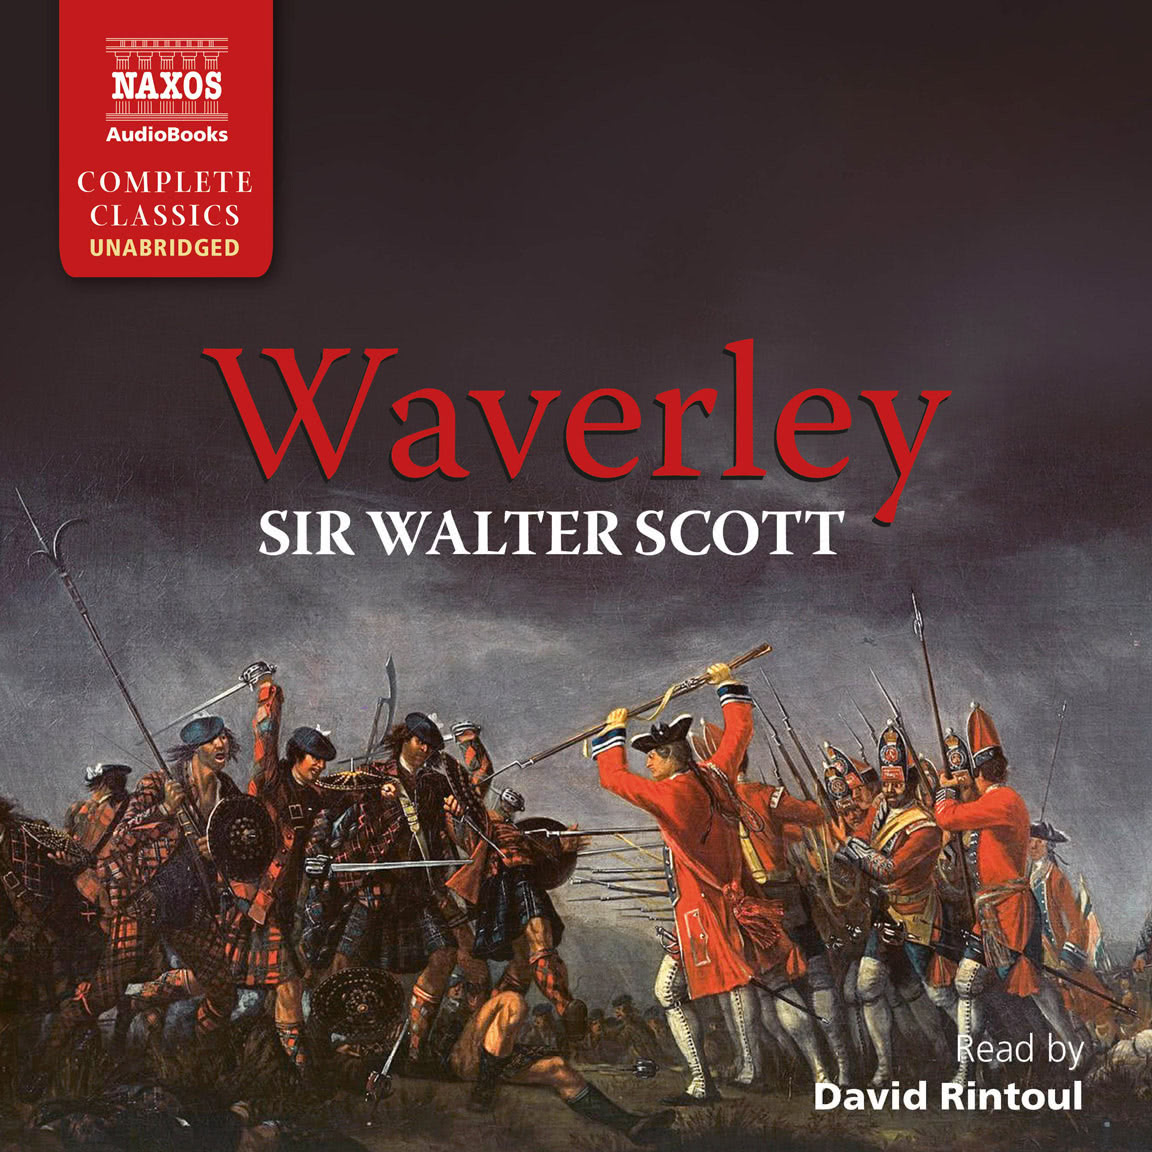 Waverley (unabridged)